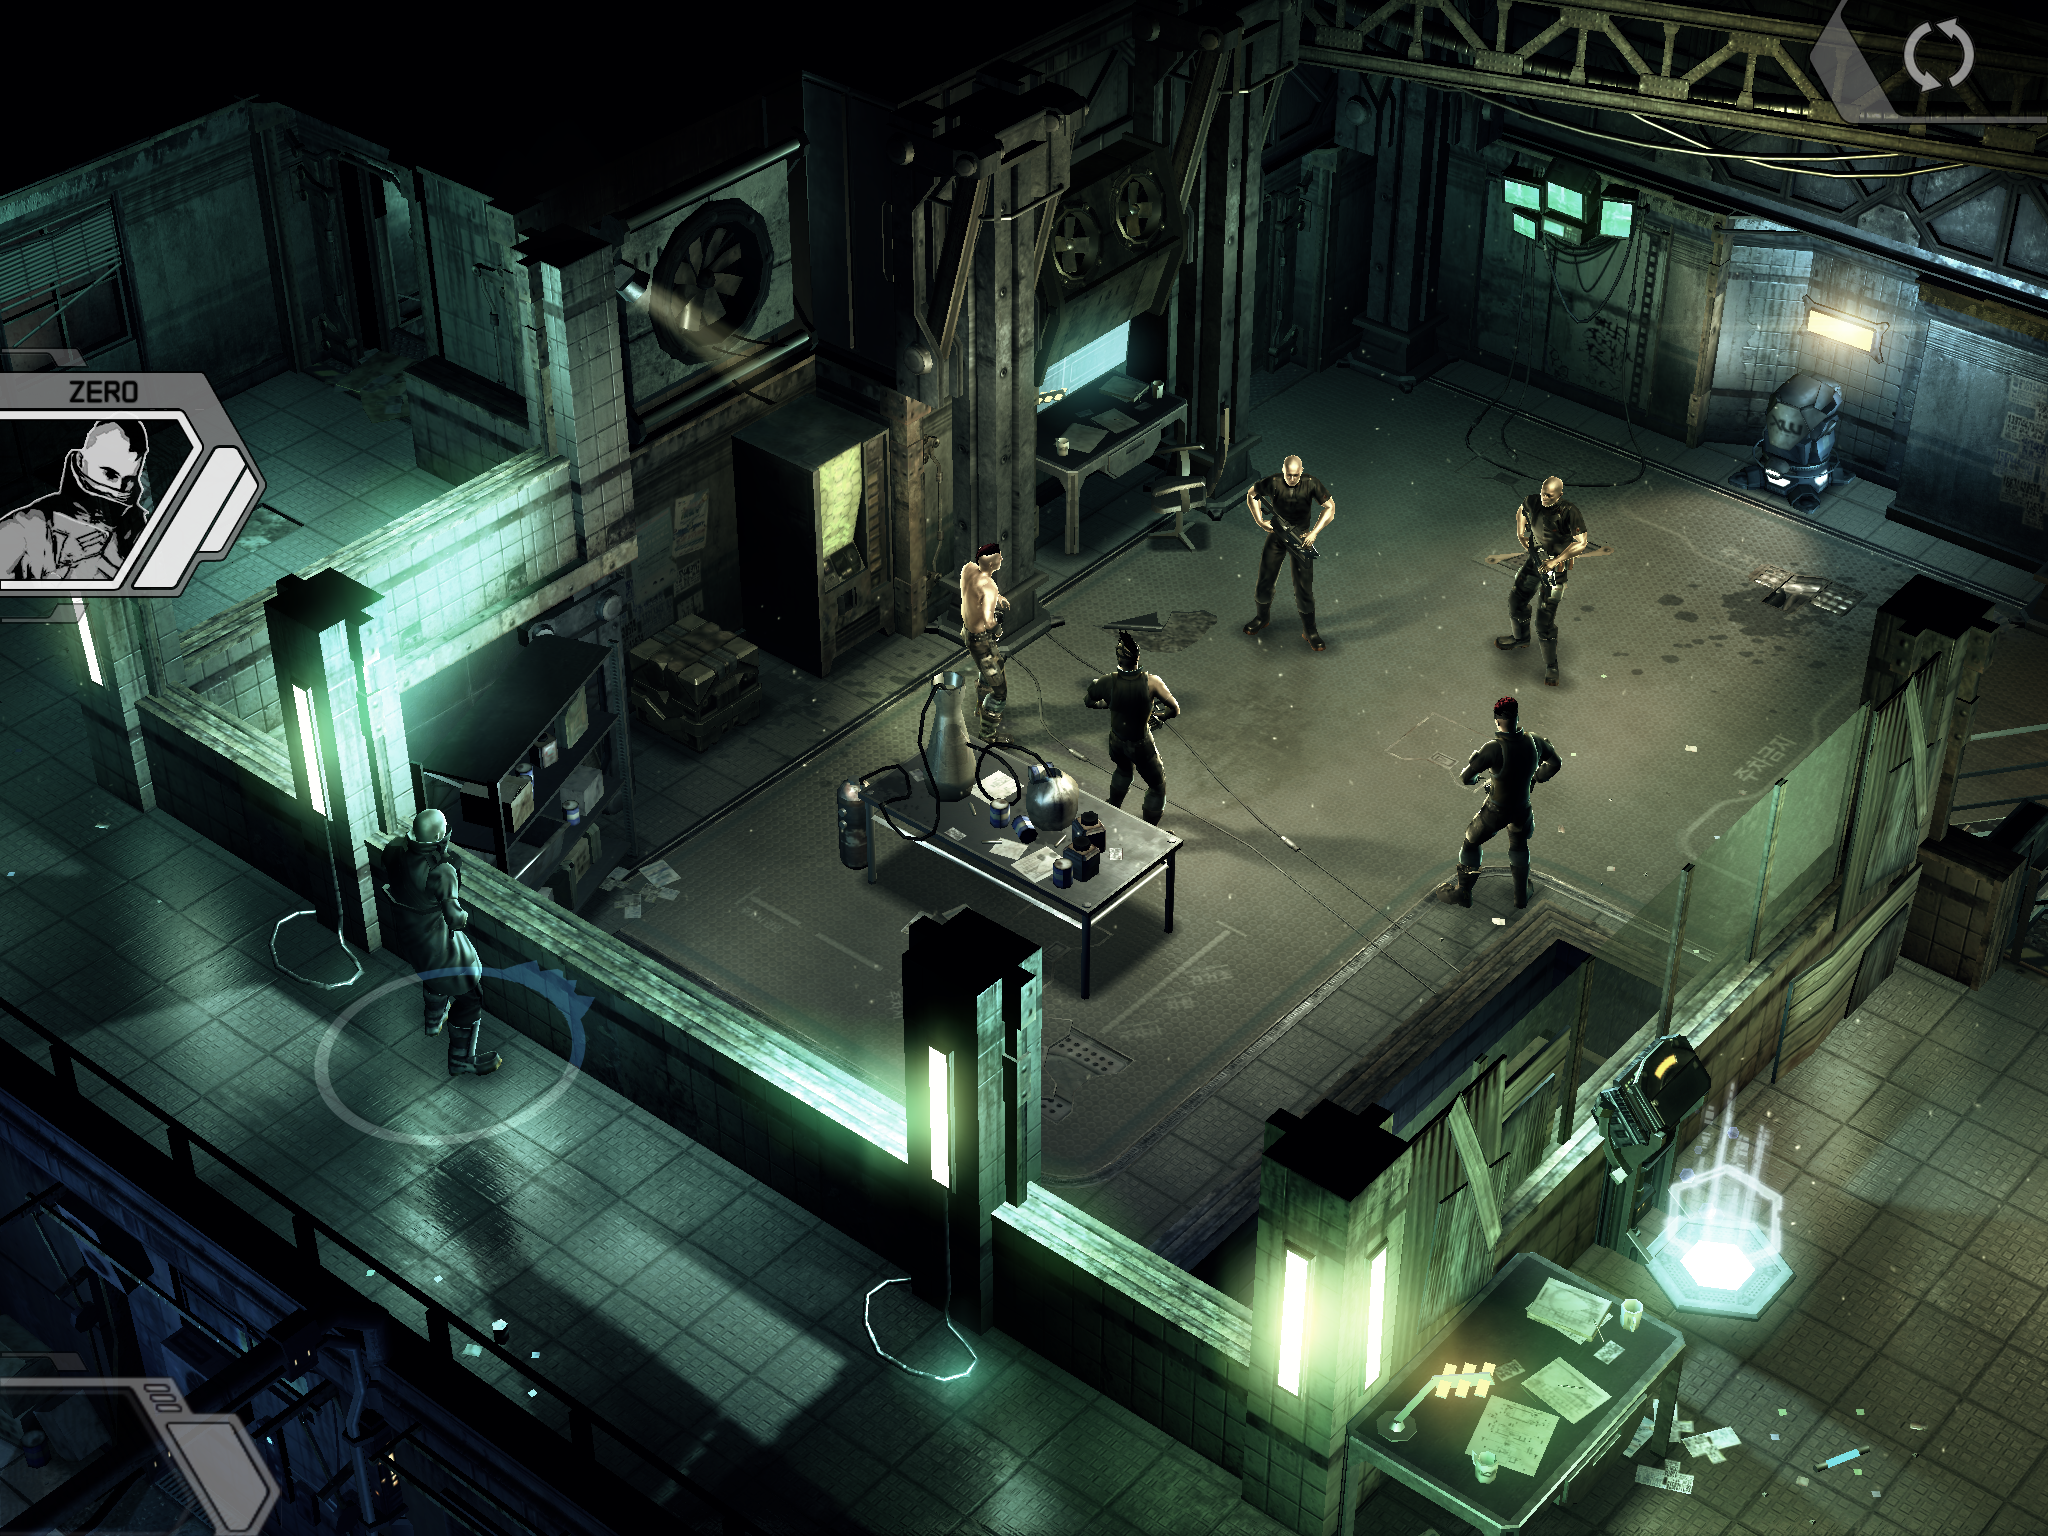 Static Sky will bring tactical cyberpunk action to iPad and iPhone